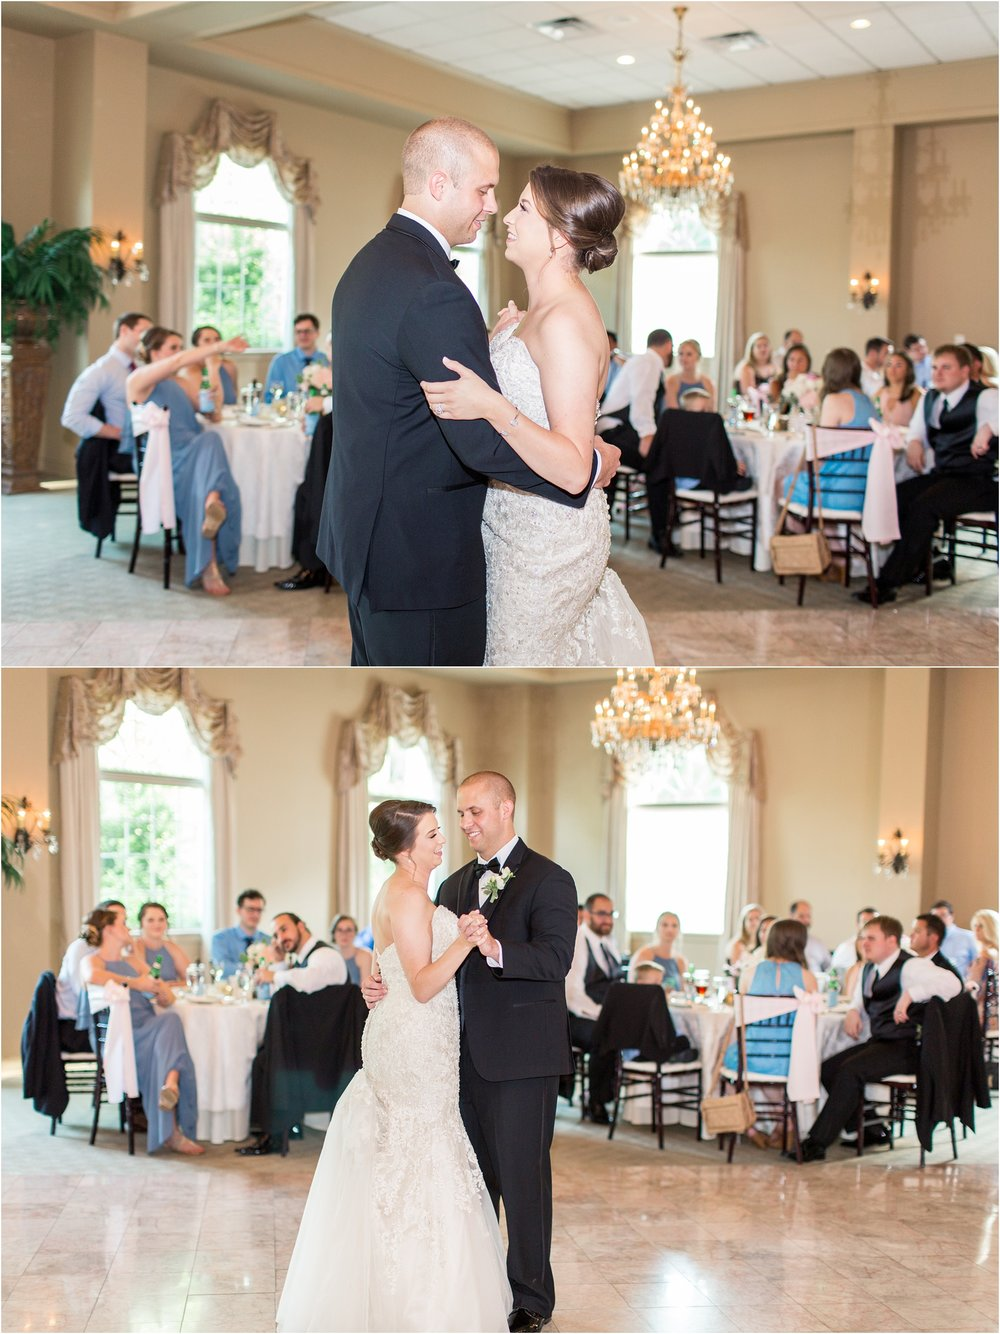 Savannah Eve Photography- Nutt Wedding- Blog-105.jpg